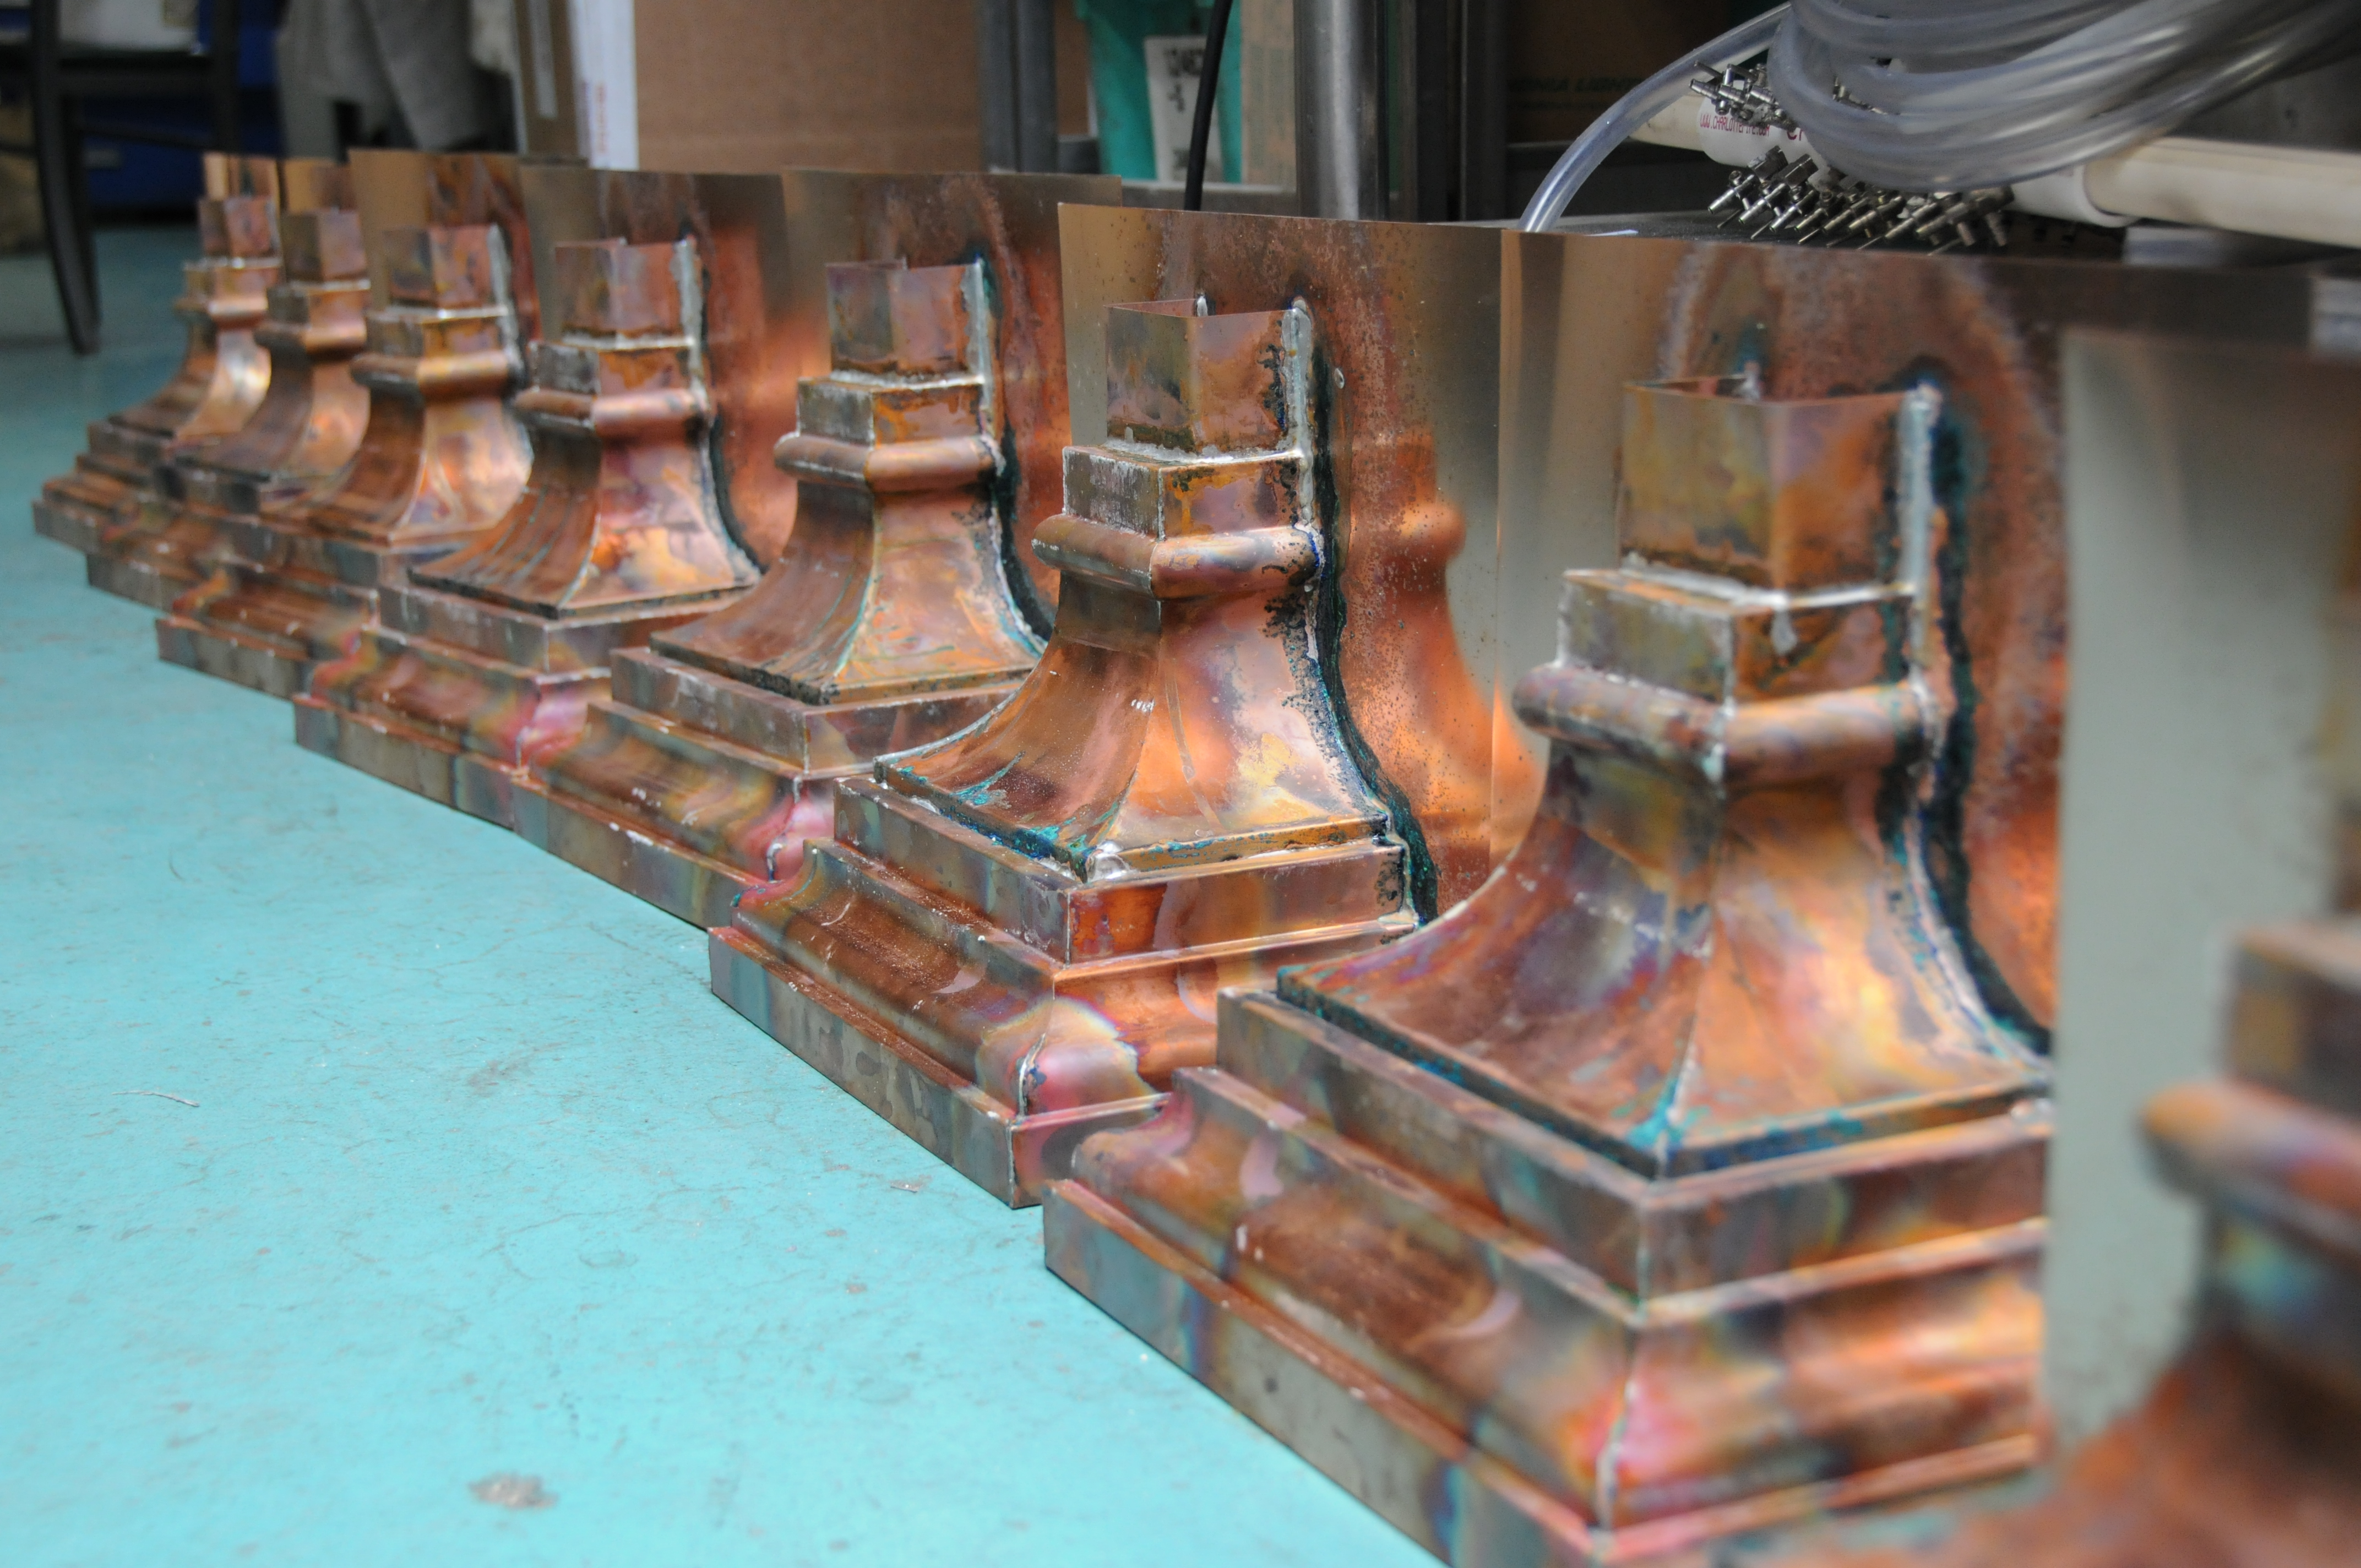 Fabrication of architectural details